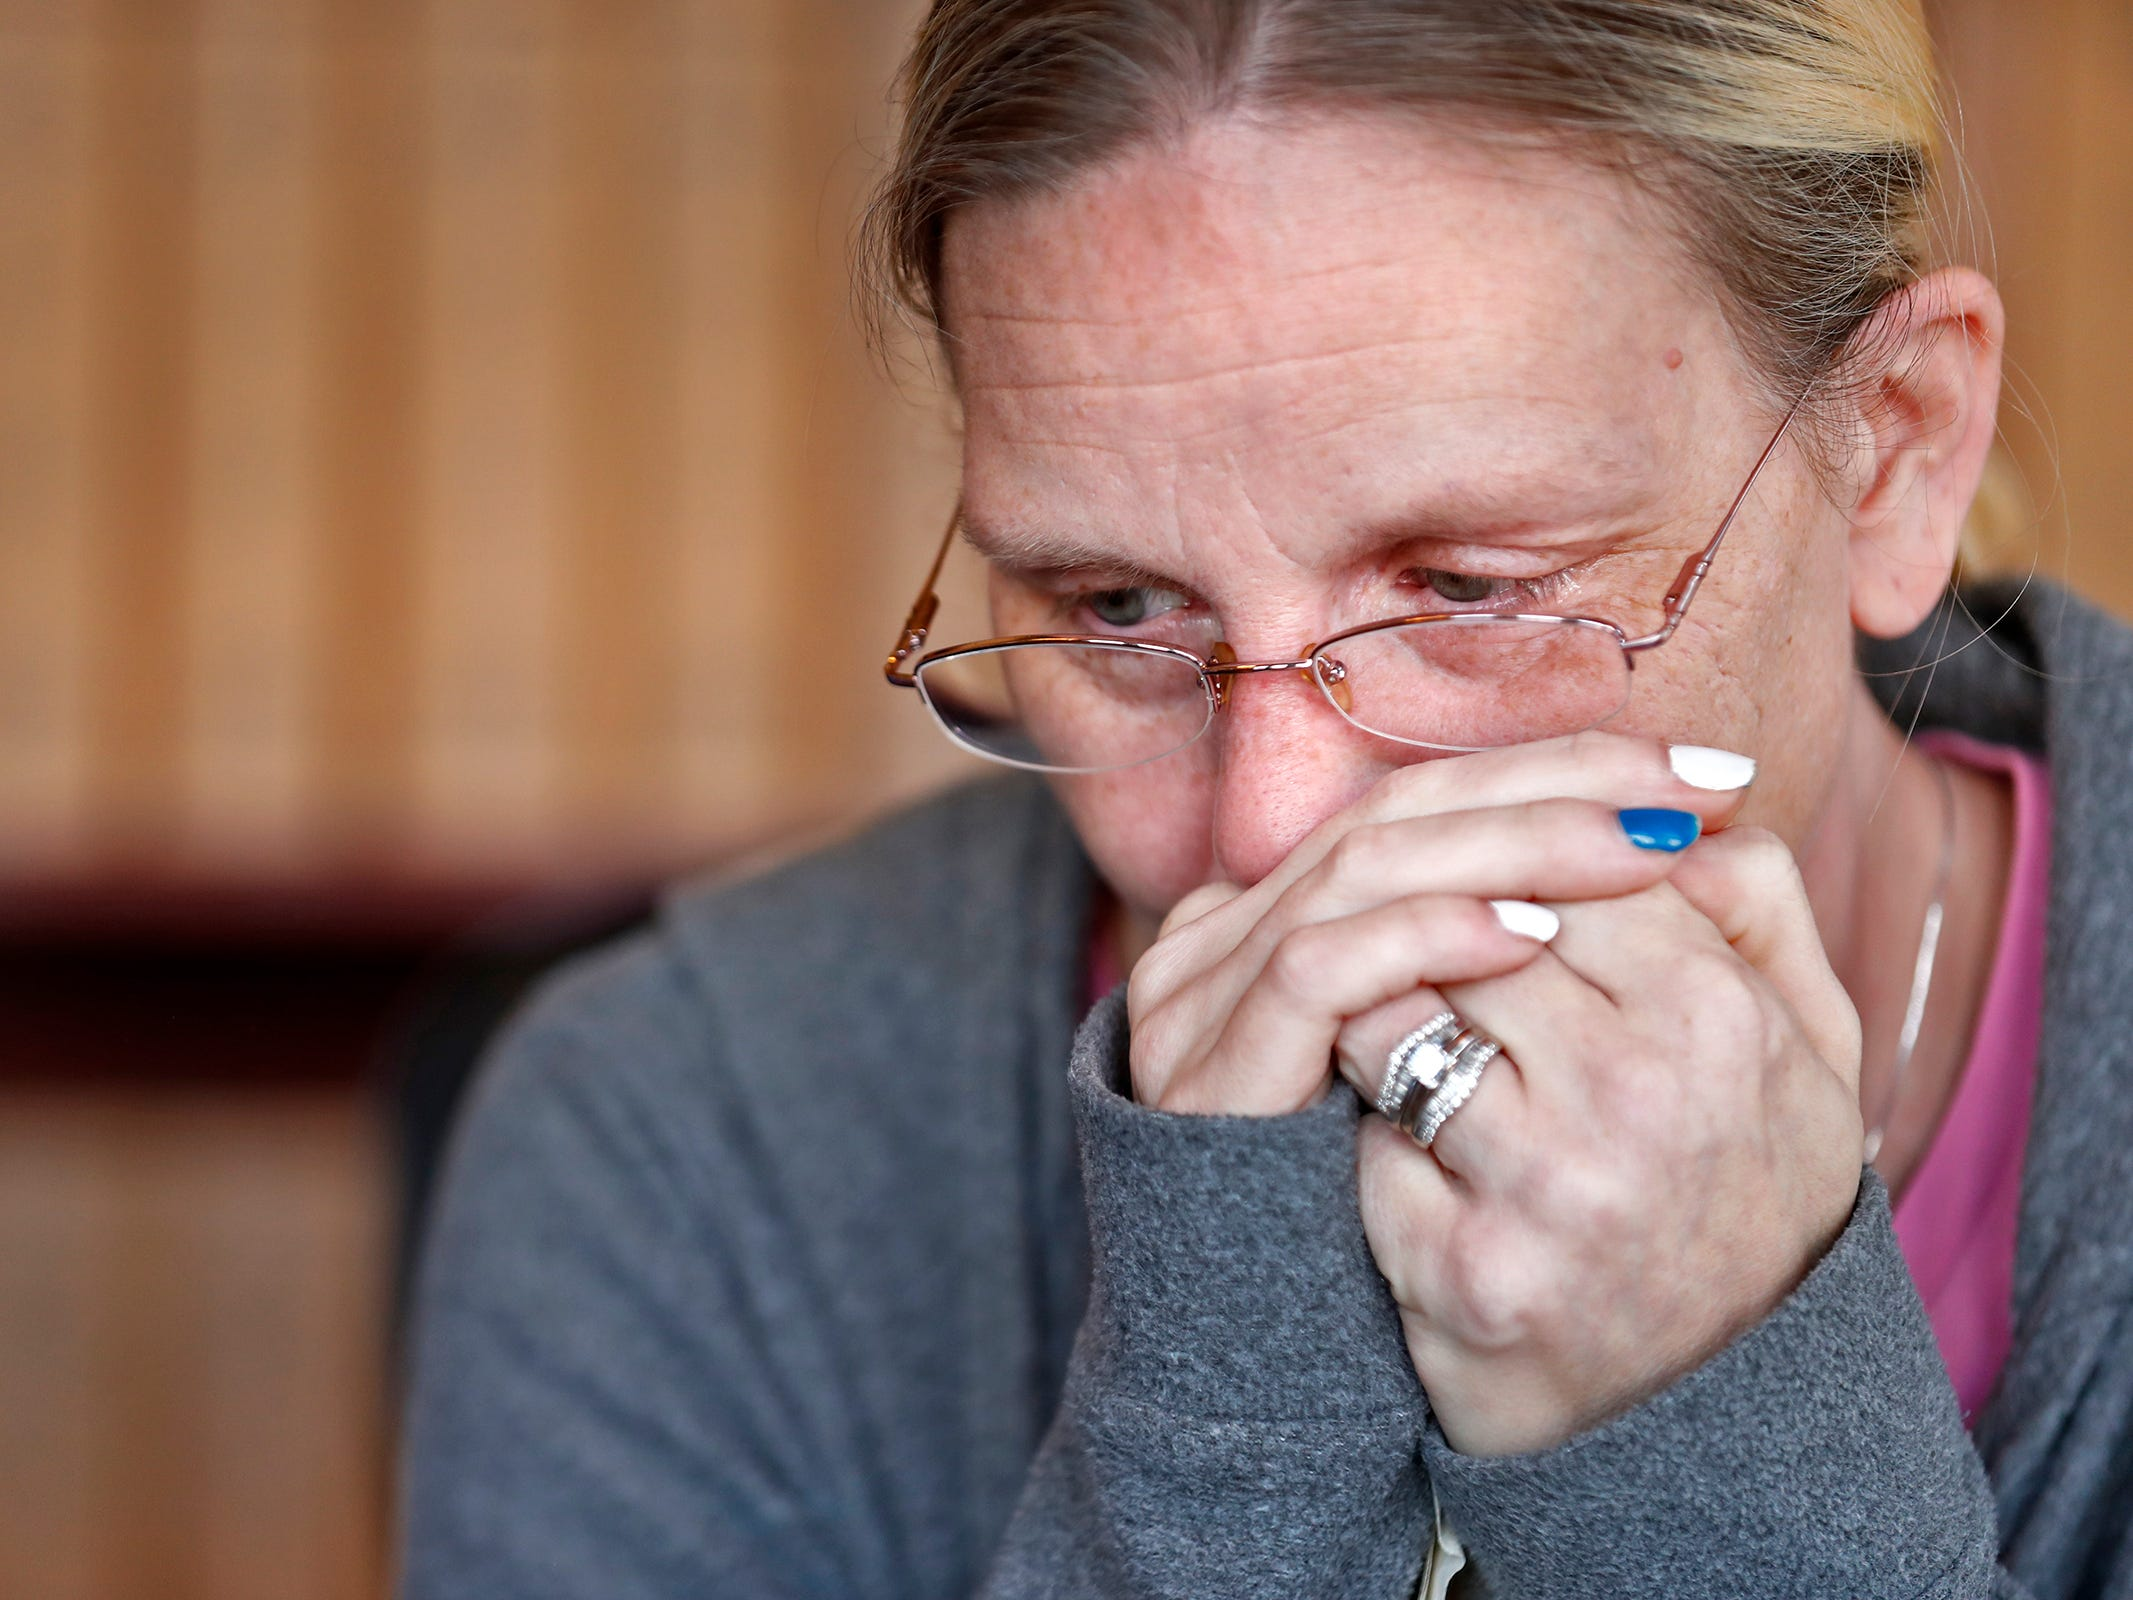 Heidi Curtis pauses while she and her husband Dave Curtis talk about their daughter Charly, Thursday, Feb. 21, 2019. Charly was born with a genetic condition that eventually led her to develop grand mal seizures. After trying many medications that would work at first then become ineffective, they eventually tried treating her with THC, which has been known to help children with seizures.  But in Indiana, that meant going through a lot of bureaucratic red tape.  When their THC was about to run out, Charly's father drove to Colorado to replenish their supply.  In his absence, Charly had a seizure and died.  The New Castle family wants to share their story to promote the legalization of medical marijuana.